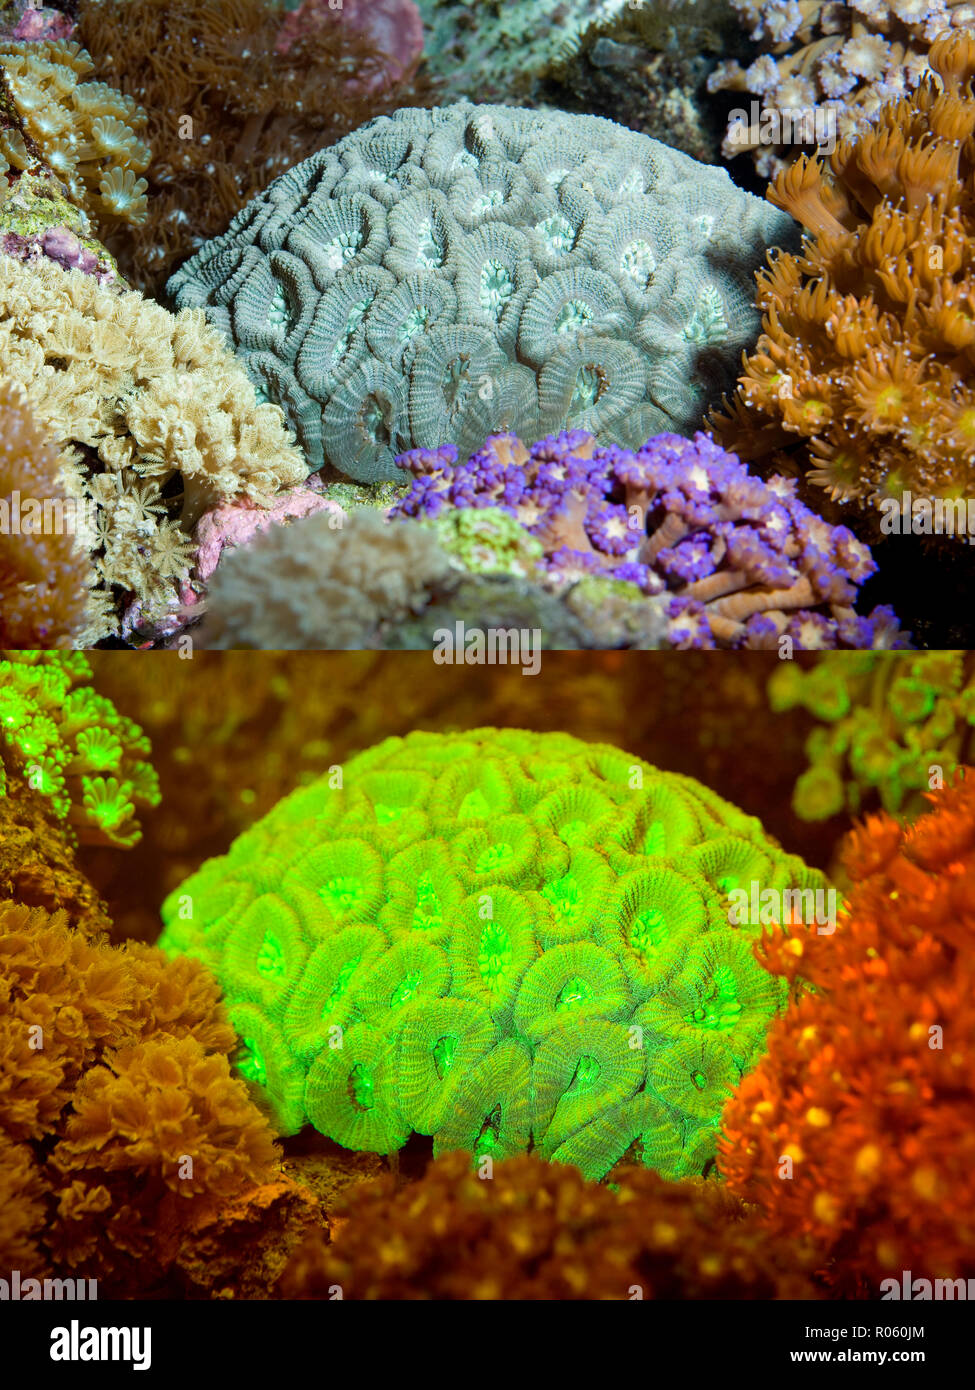 Fluorescent coral. Stony Coral, Favia sp.. Above photographed with daylight and bellow showing fluorescent colours photographed under special blue - Stock Image